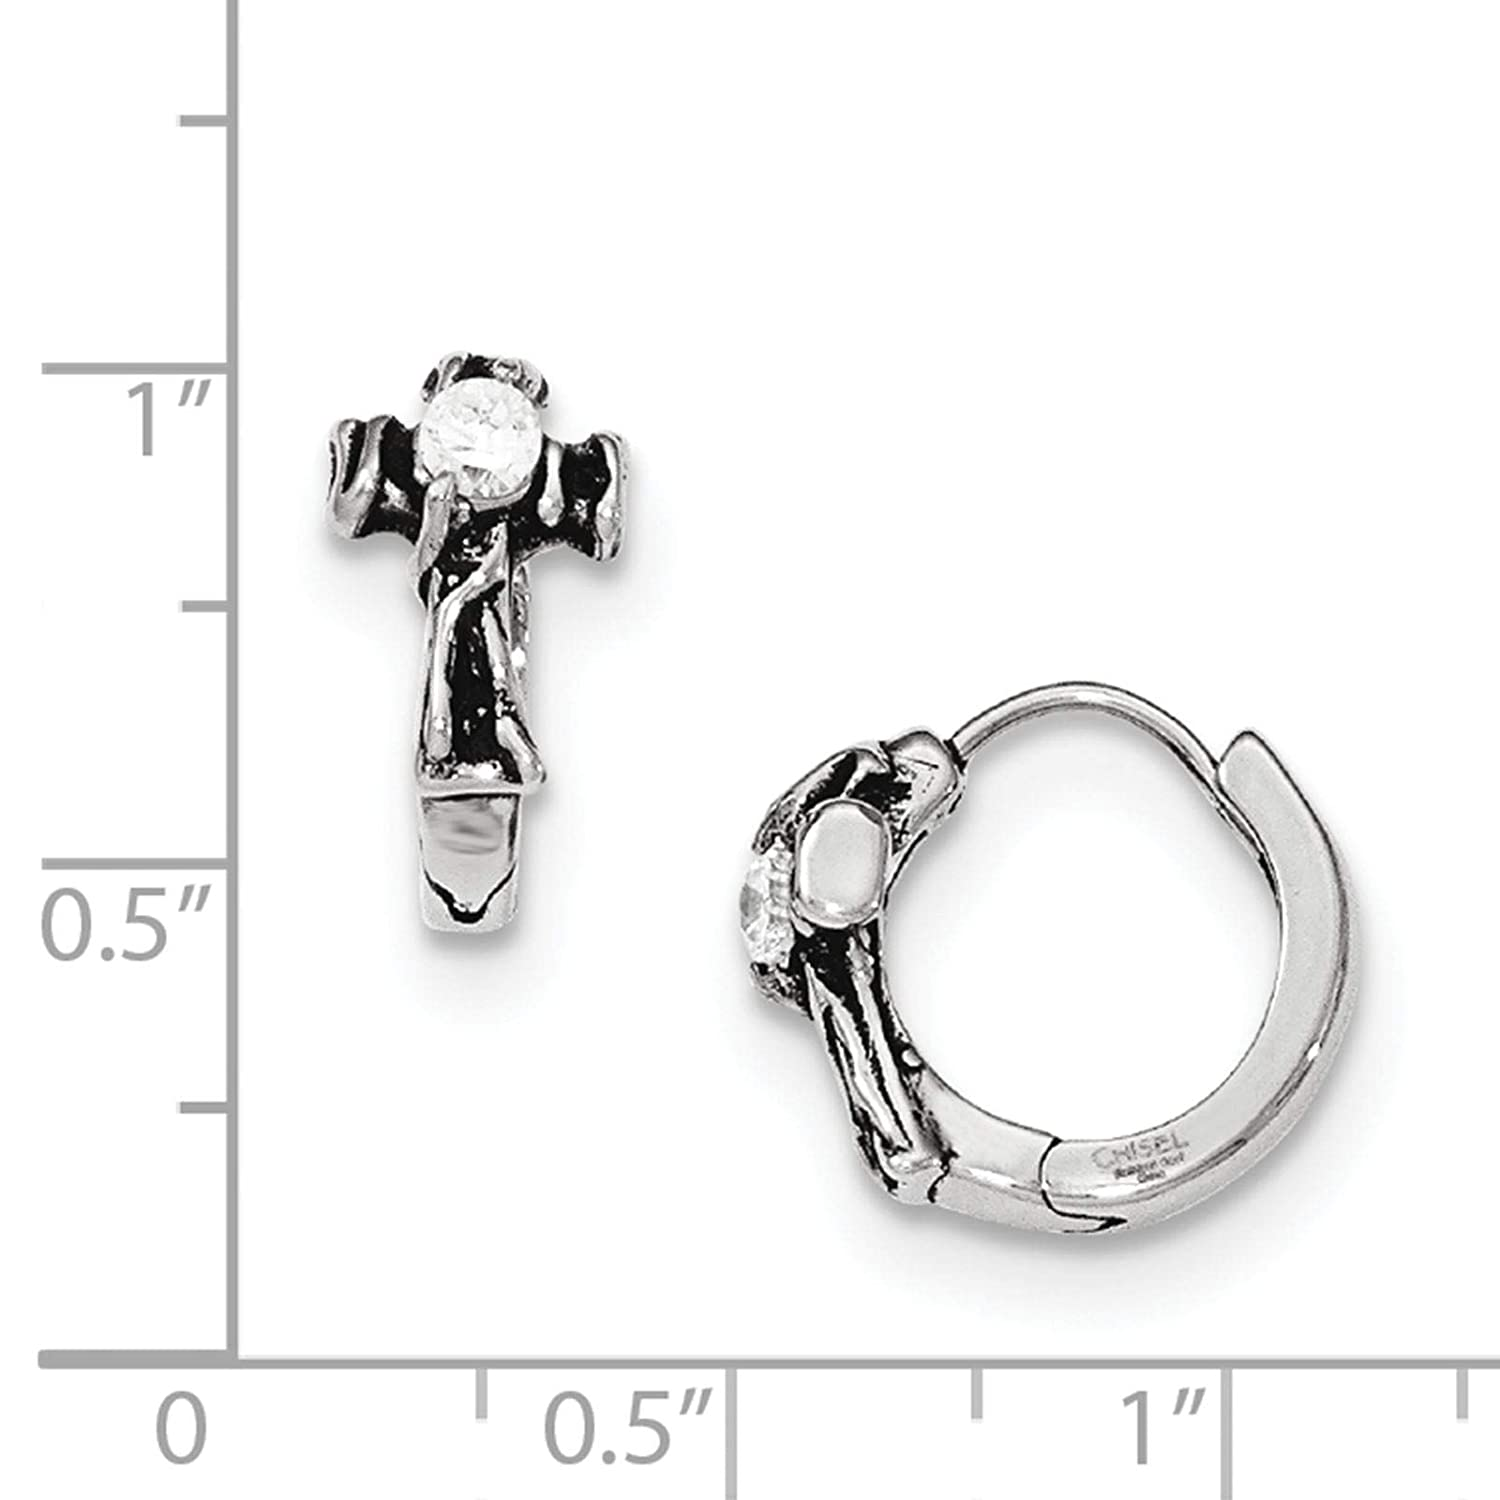 Stainless Steel Polished /& Antiqued w//CZ Cross Hoop Earrings